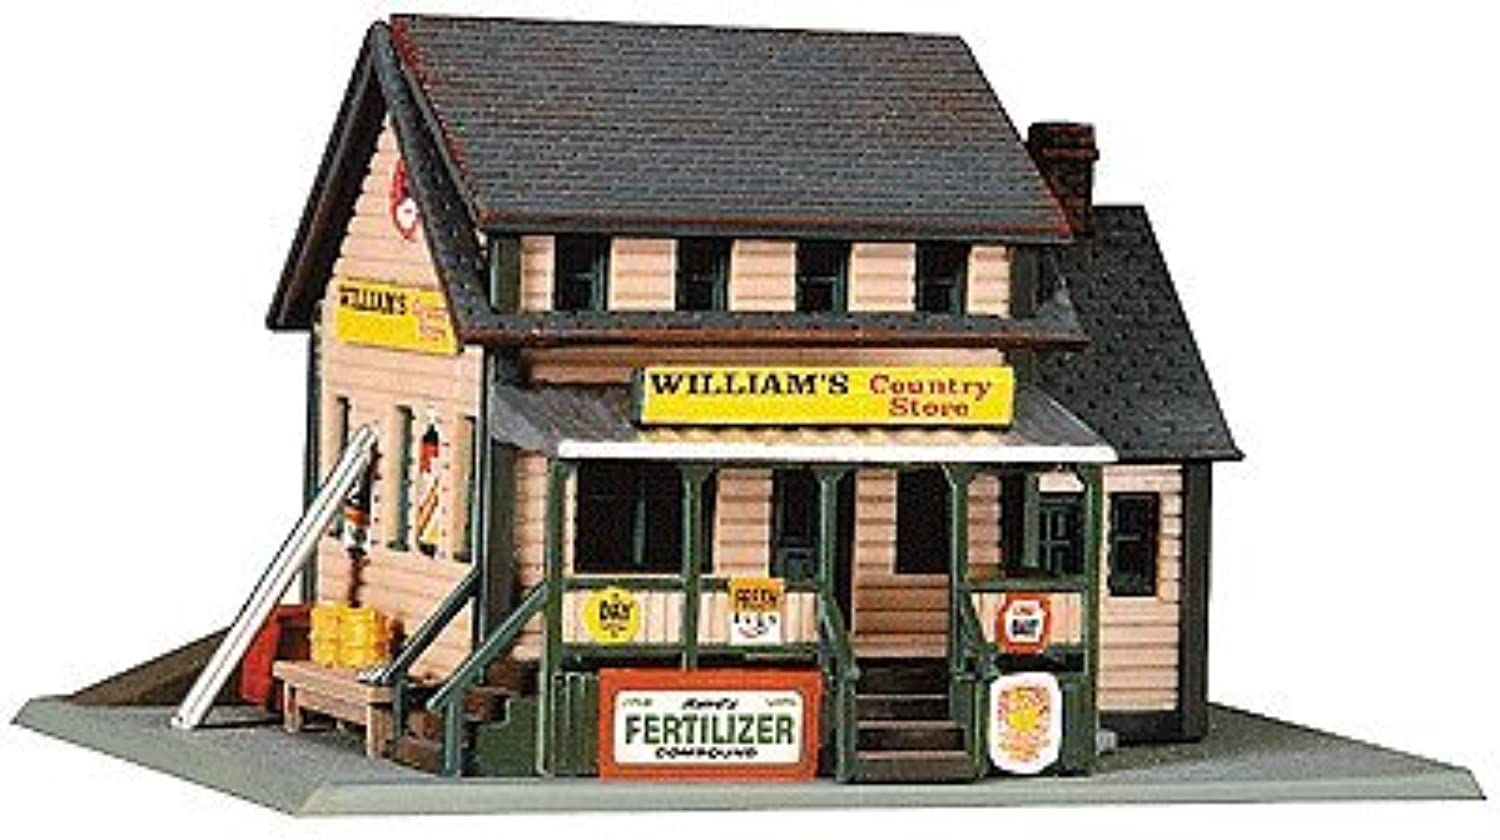 William 's Country Store – -キット